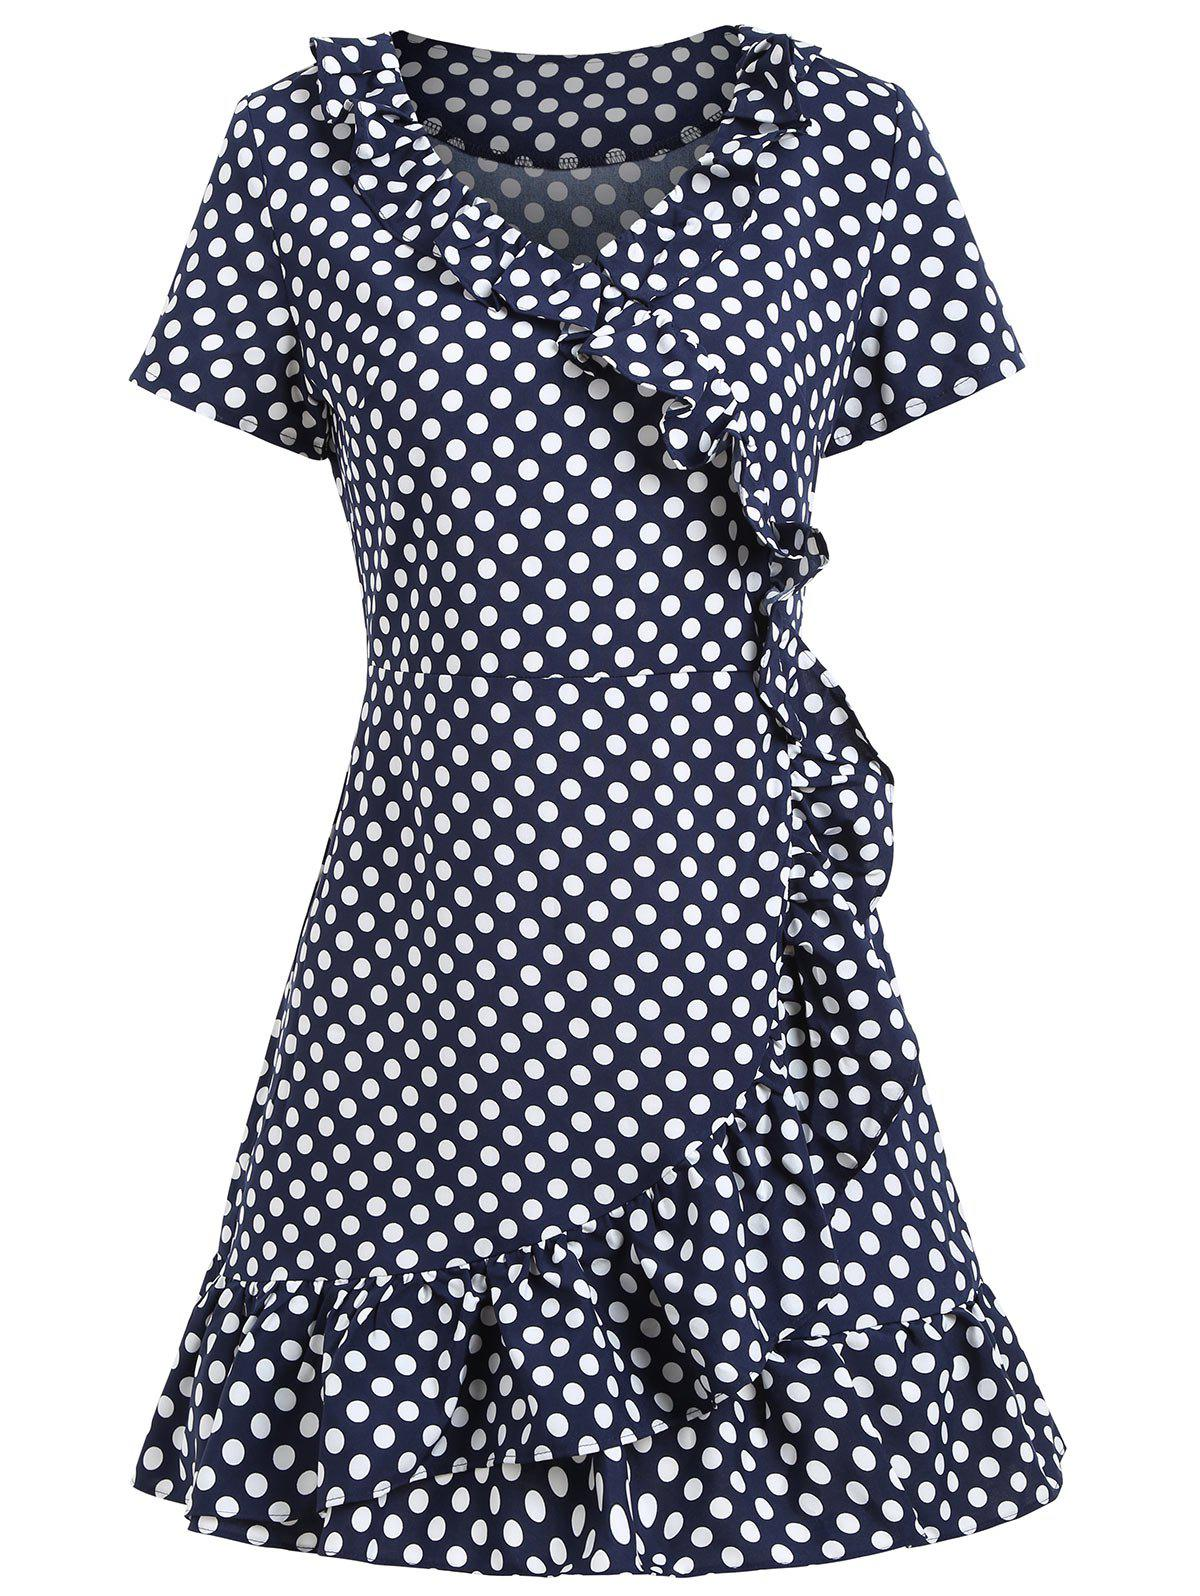 Outfits Polka Dot Ruffles Short Dress